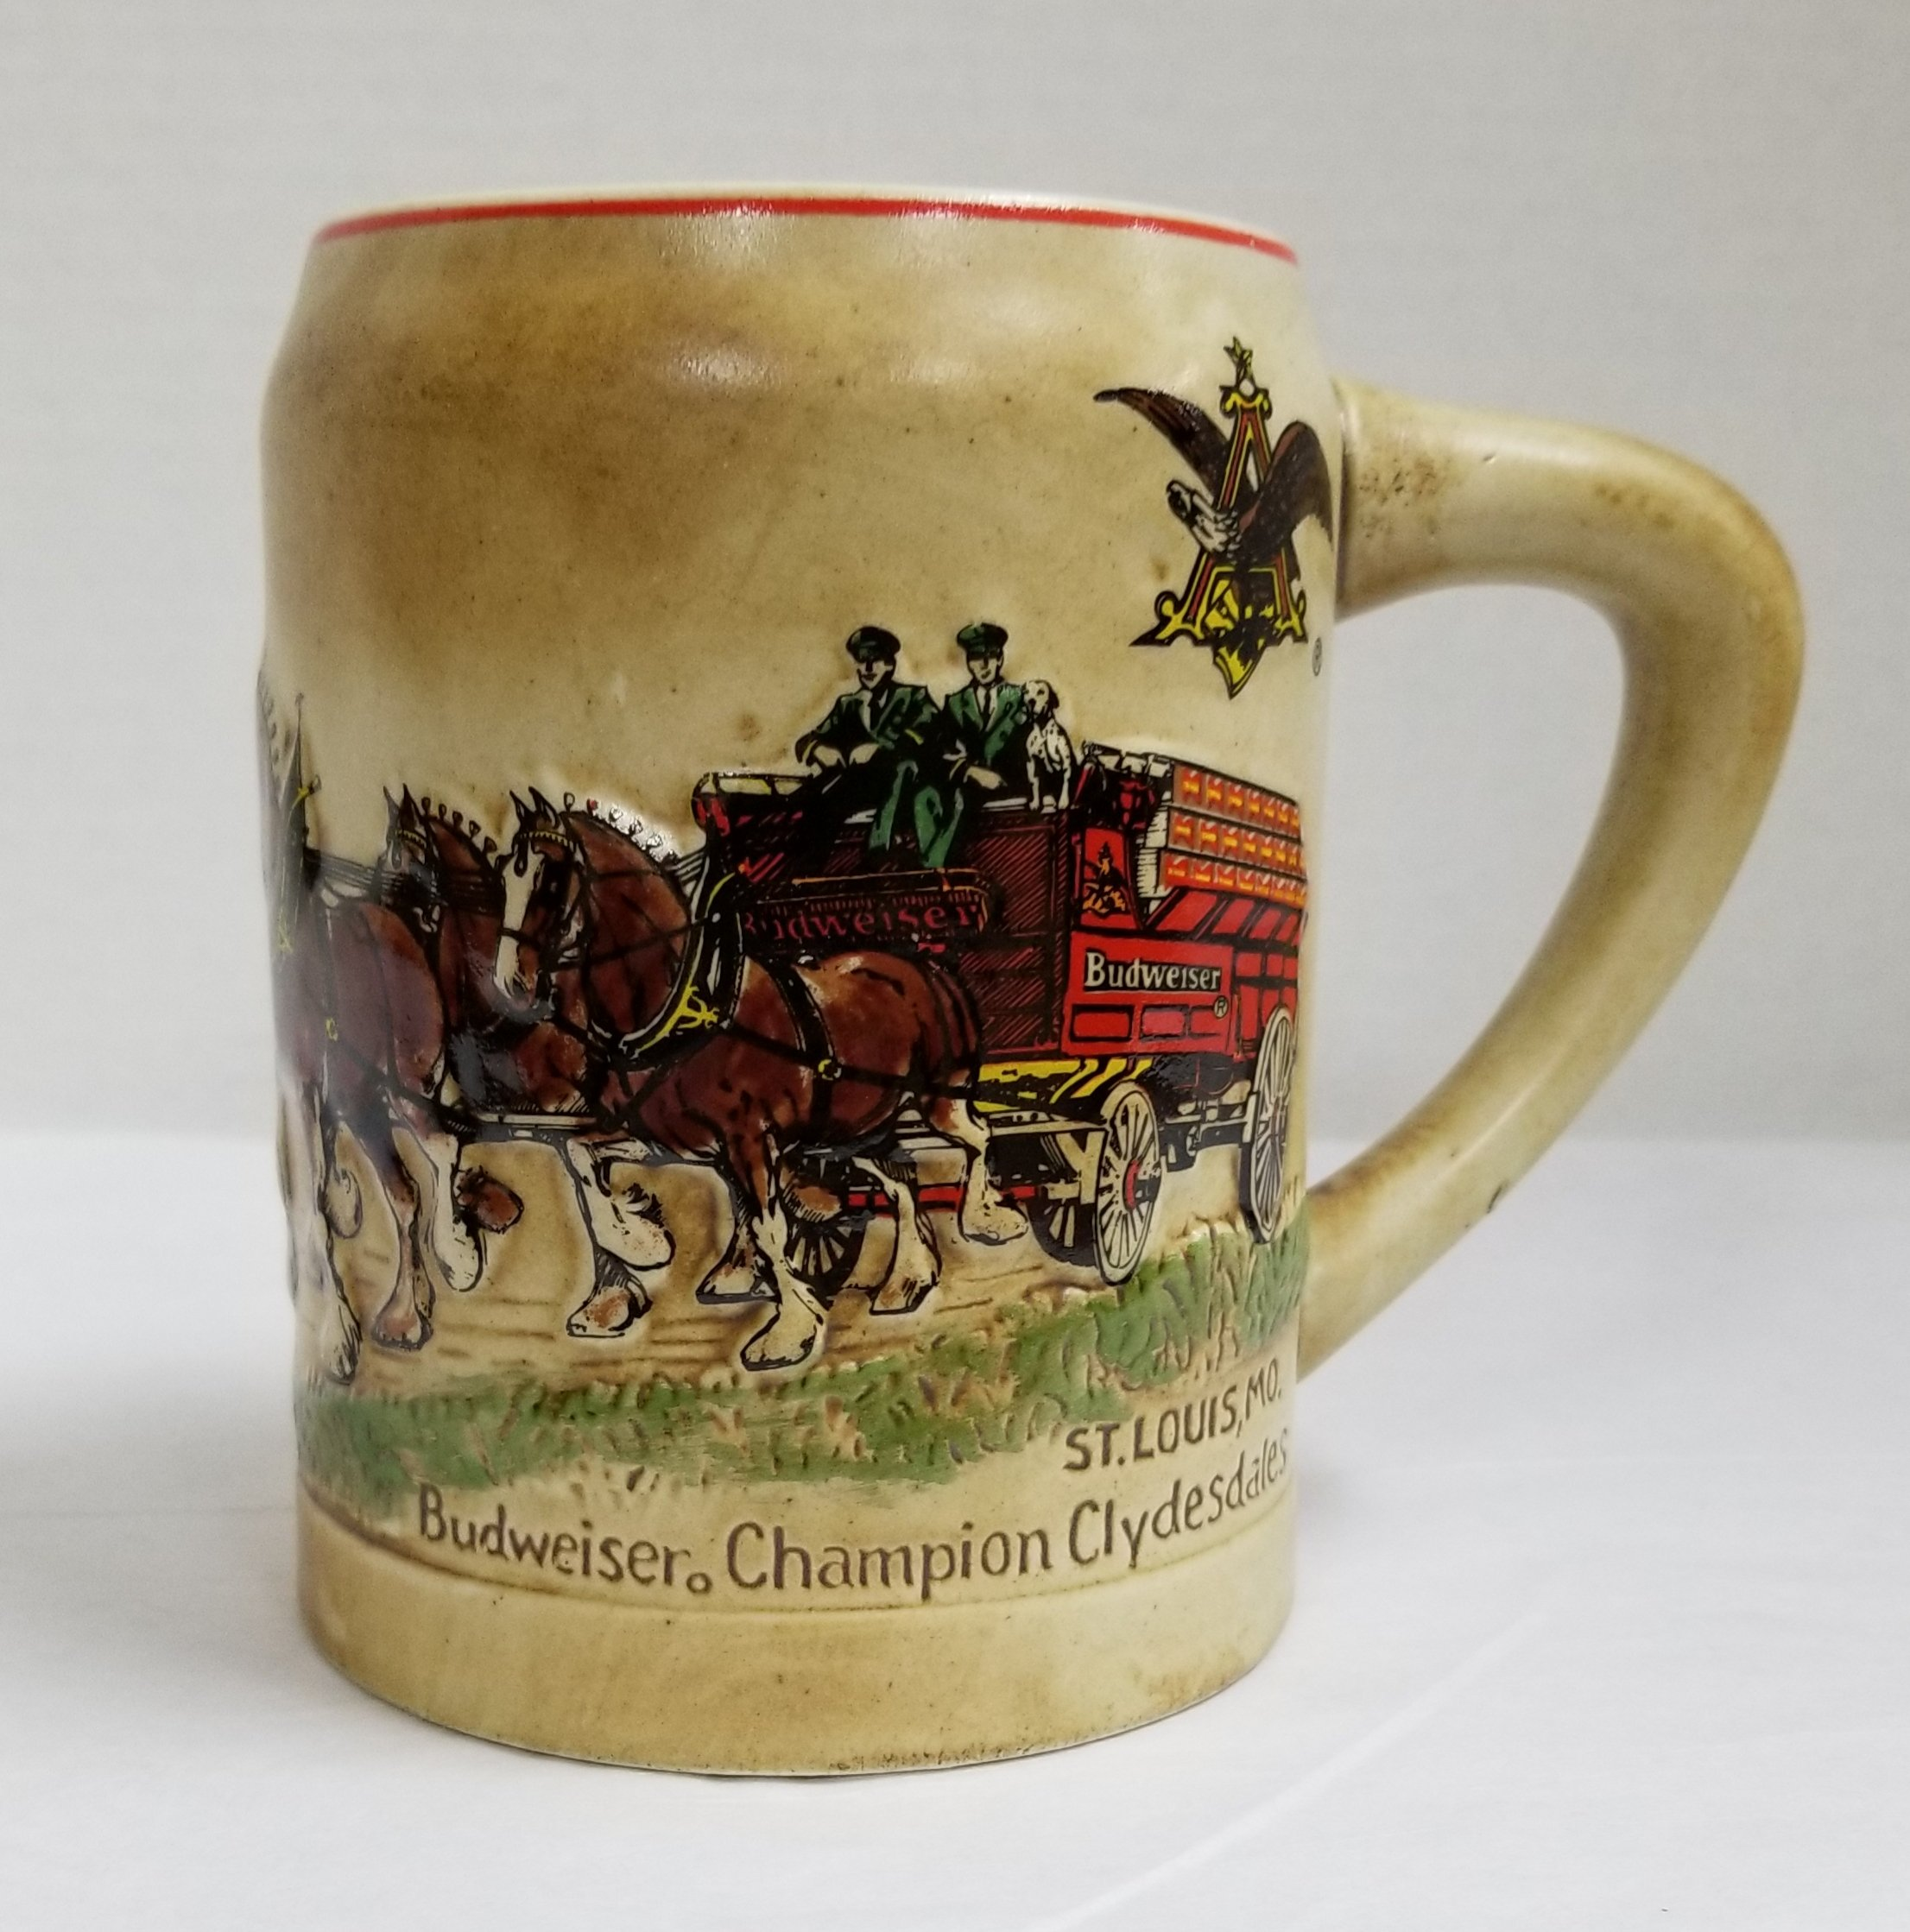 Vintage -1980 BUDWEISER Champion Clydesdales STEIN (approx. 5'' Tall) - CS19 - FIRST ISSUE Holiday Series STEIN - by CERAMARTE (Made in Brazil) / (Anheuser-Busch)